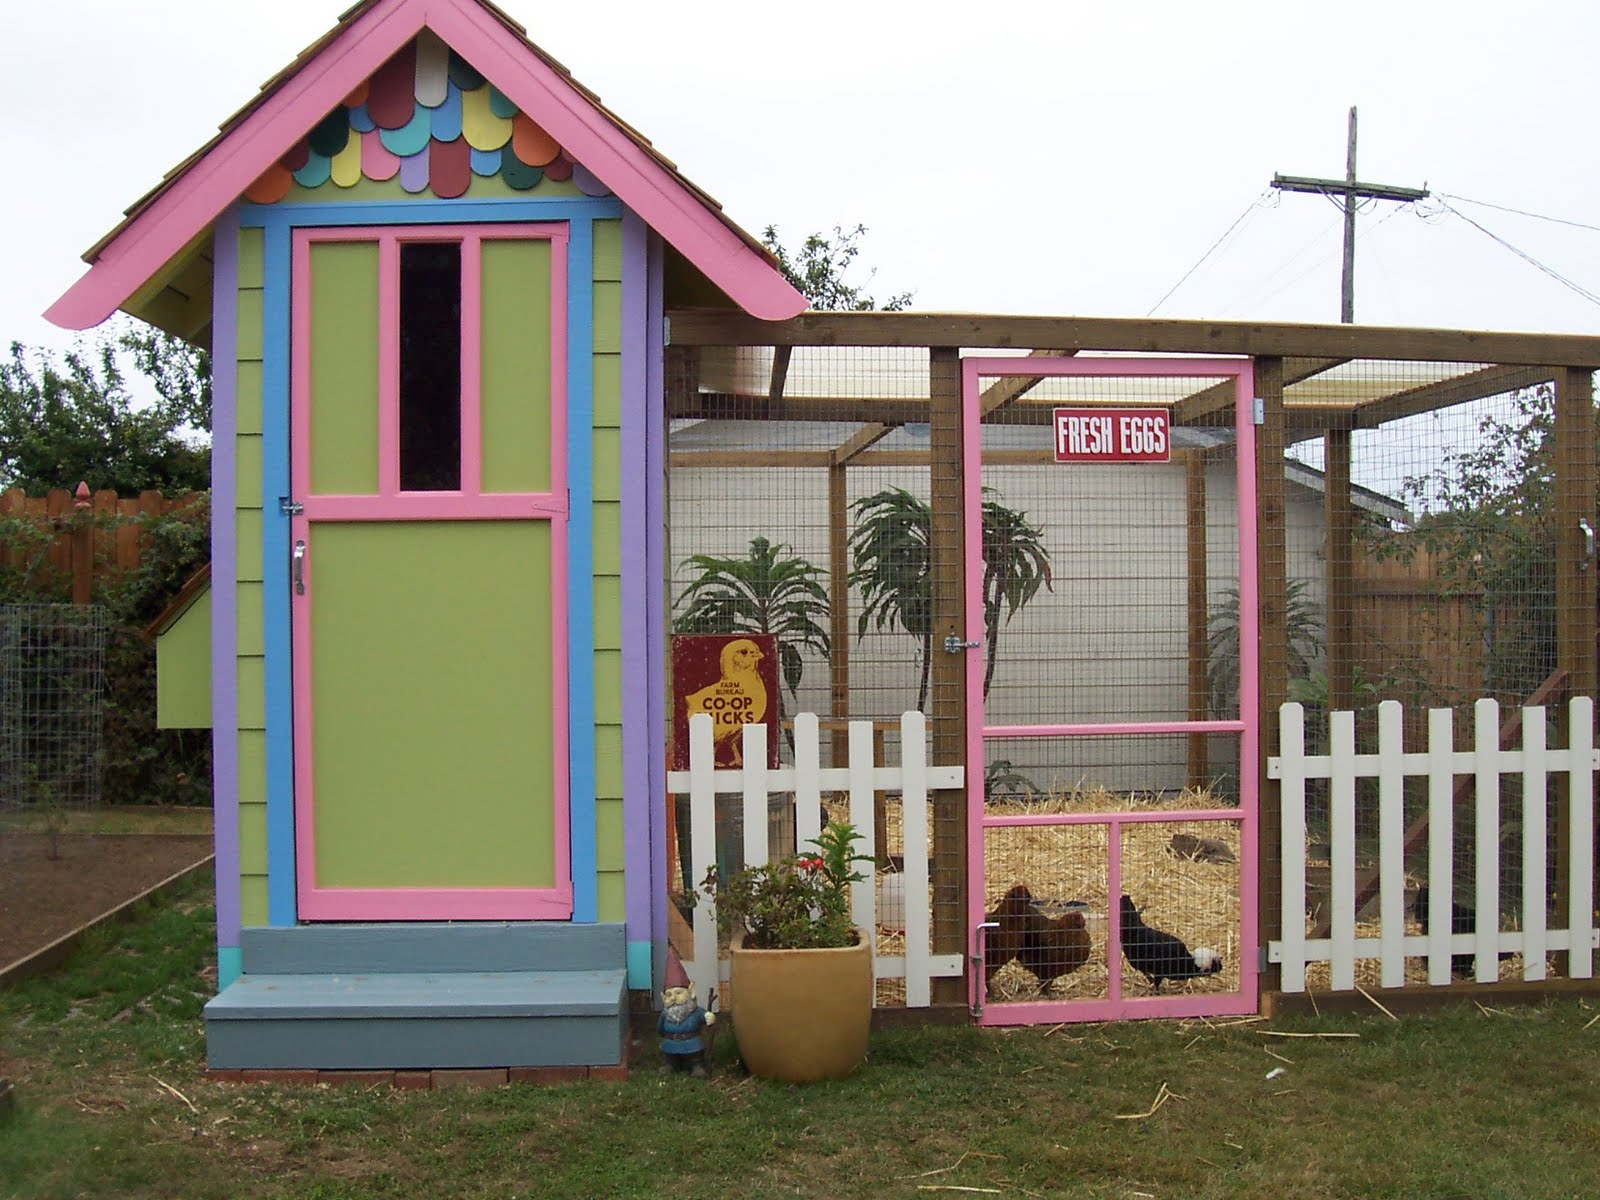 Small chicken coop looking for fancy hen house plans for Cute chicken coop ideas